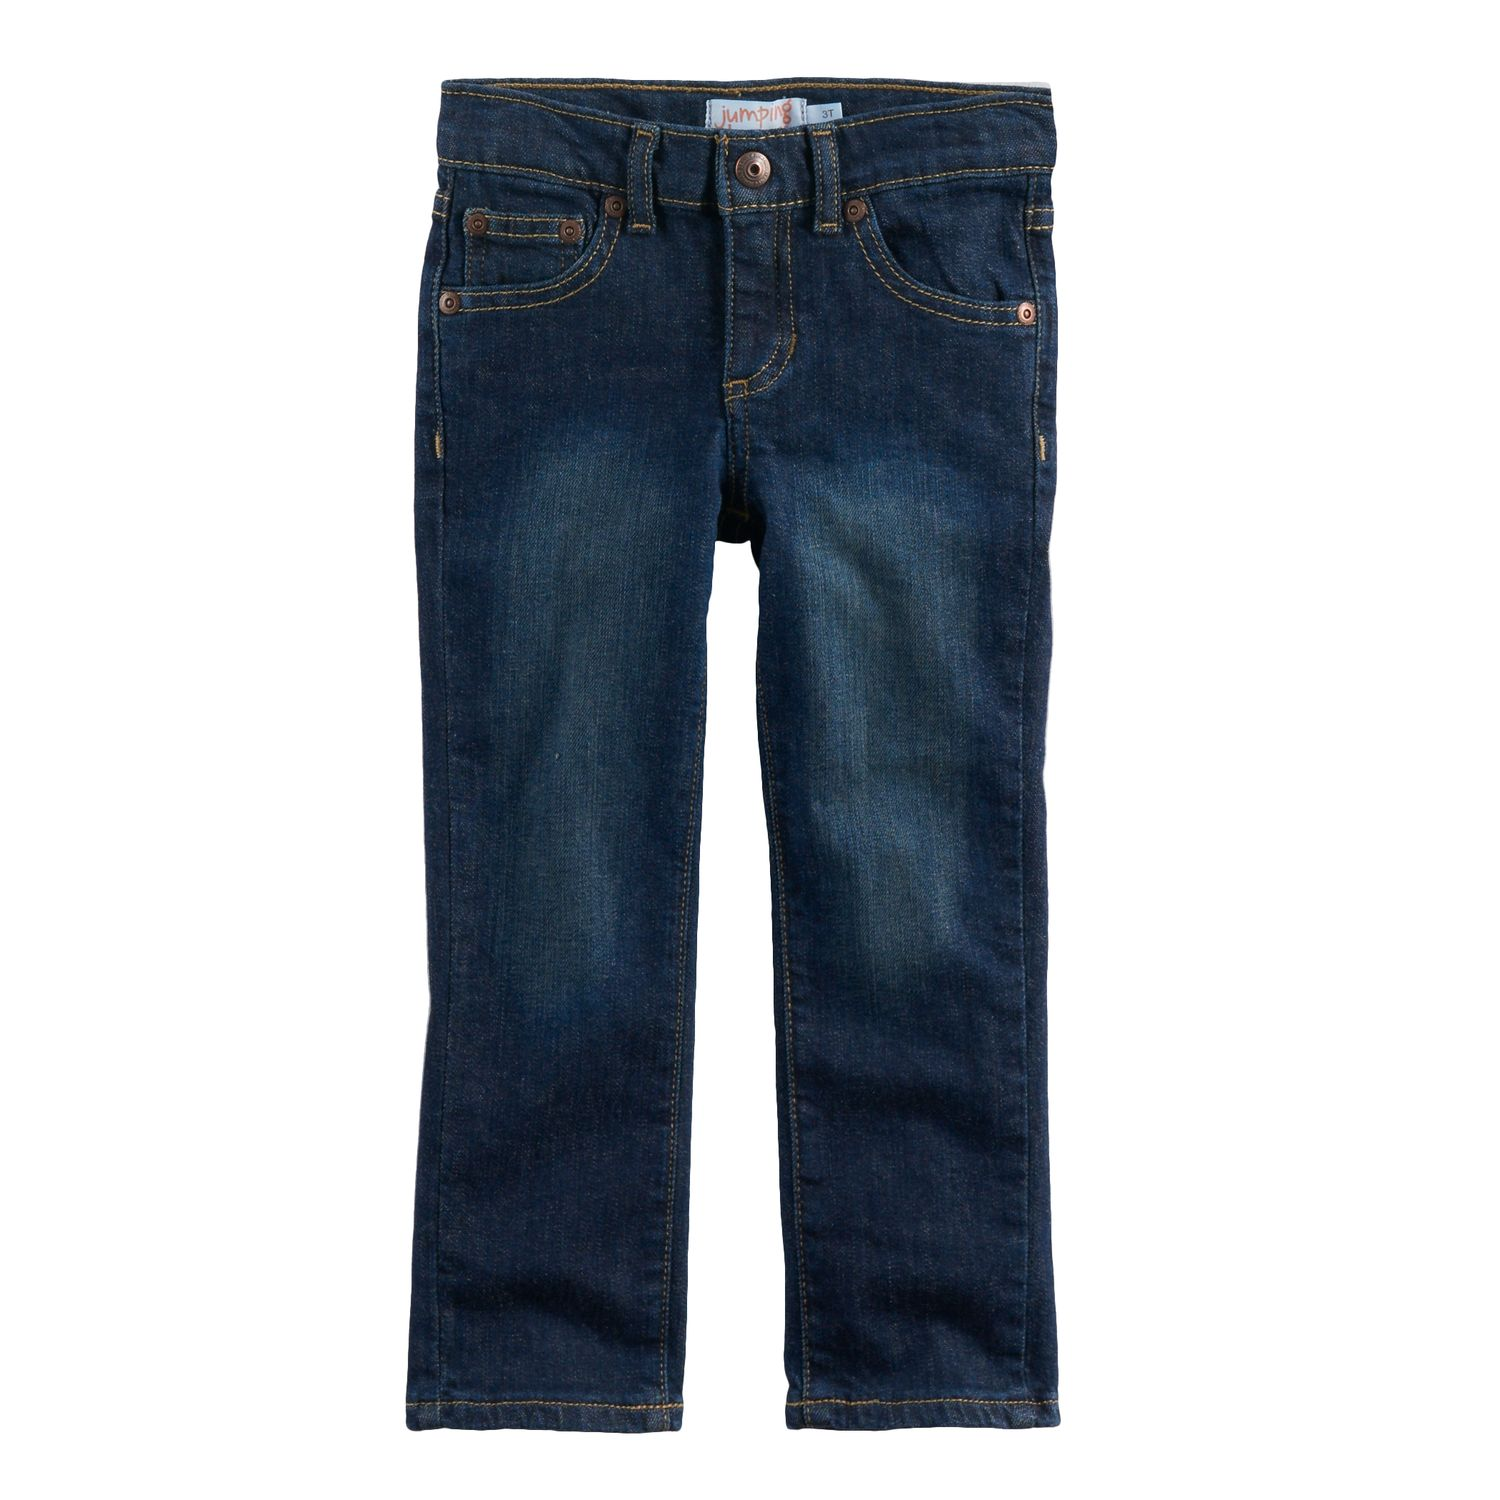 Blue skinny jeans and